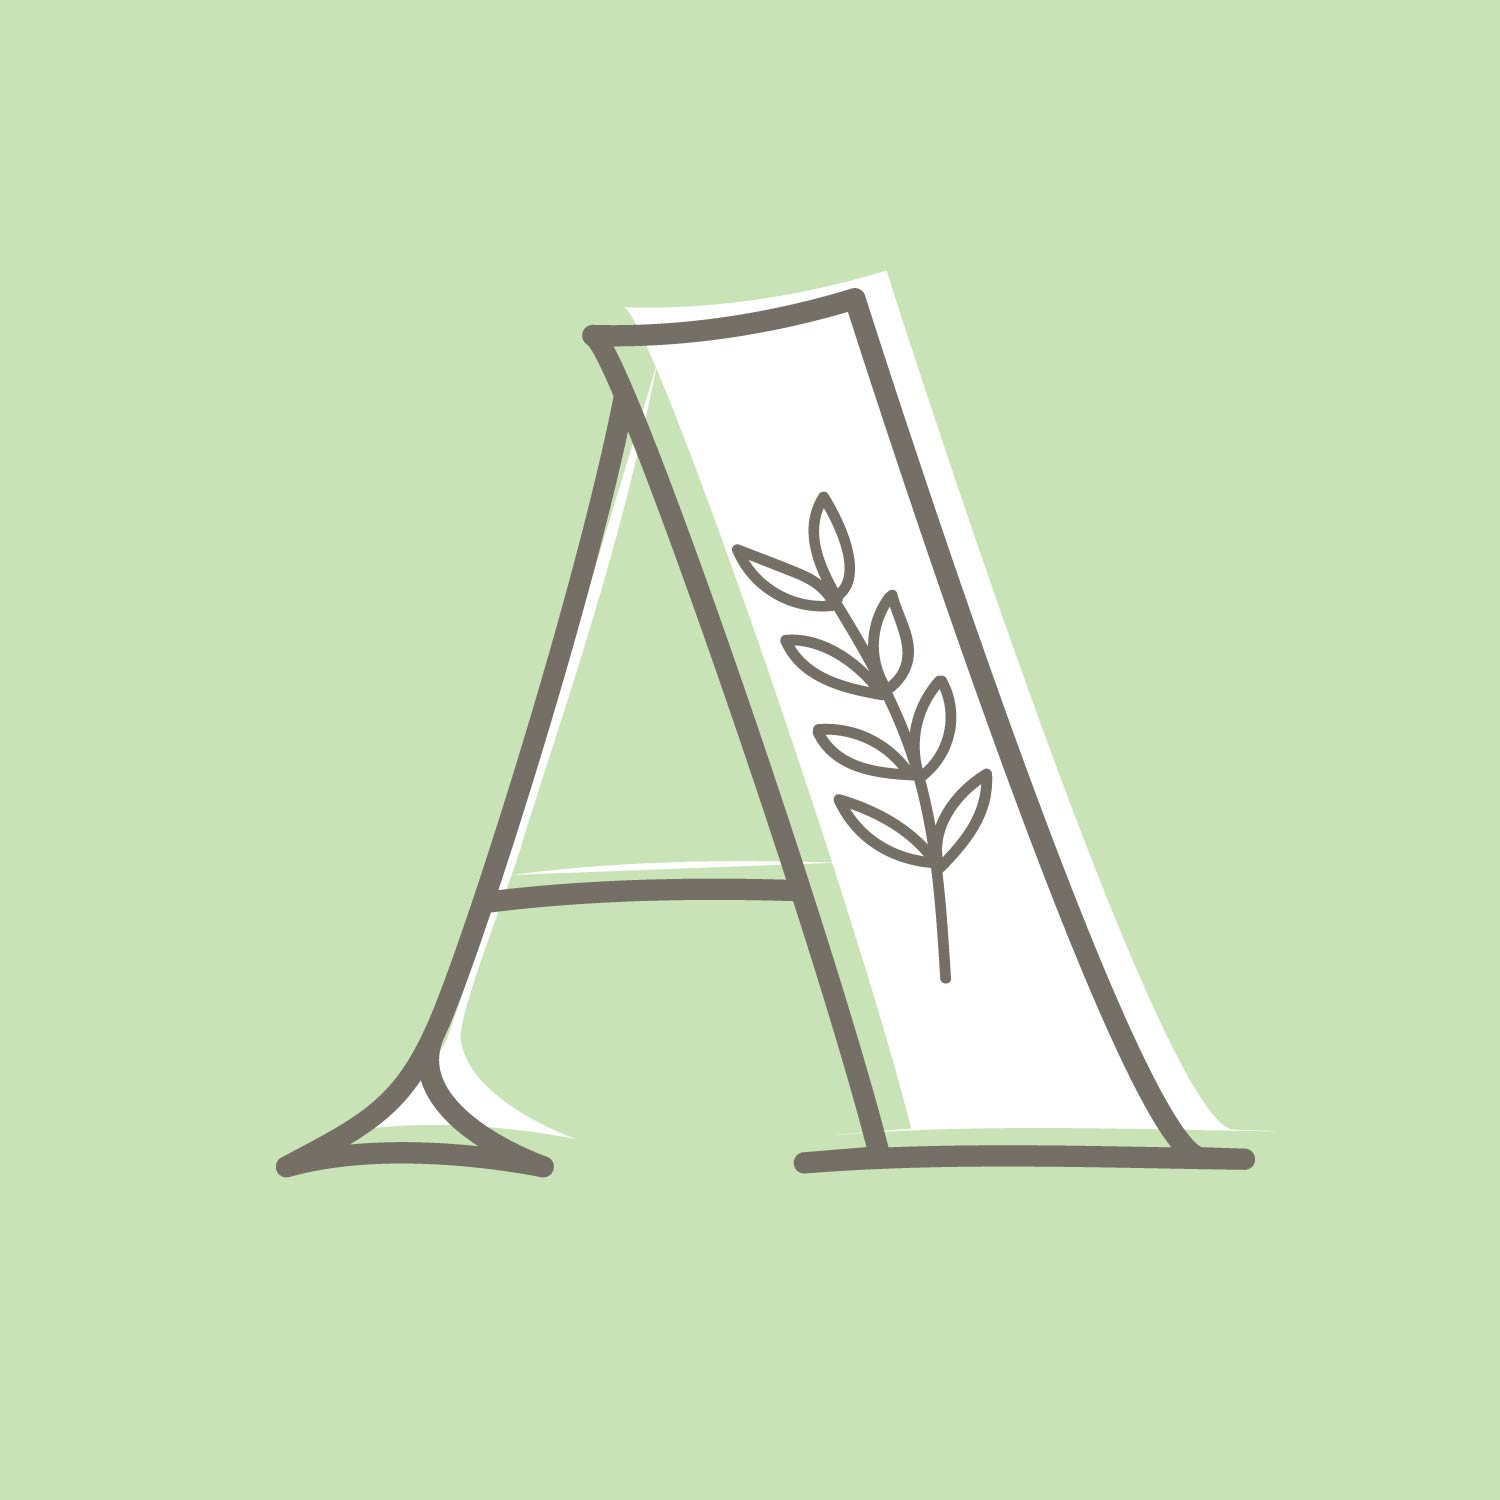 dark grey high contrast serif letter A with an olive branch in the thick downstroke, with white offset interior over soft mint green background